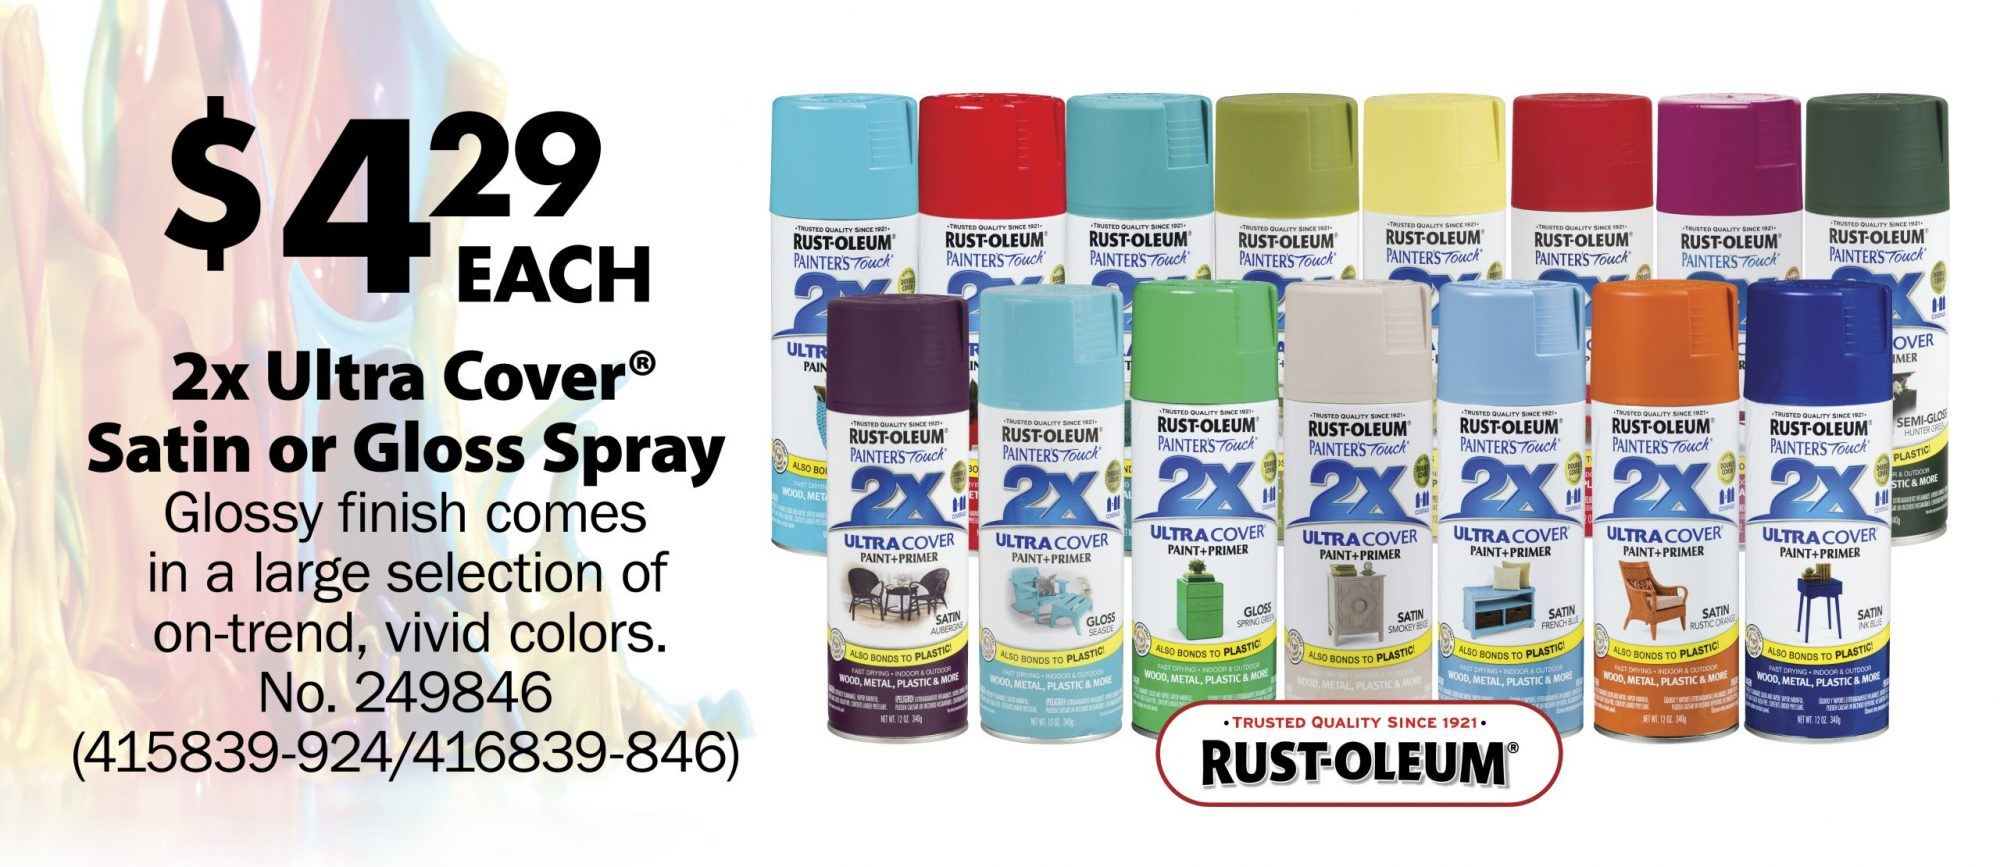 $4.29 each  2x Ultra Cover® Satin or Gloss Spray Glossy finish comes  in a large selection of  on-trend, vivid colors. No. 249846 (415839-924/416839-846)